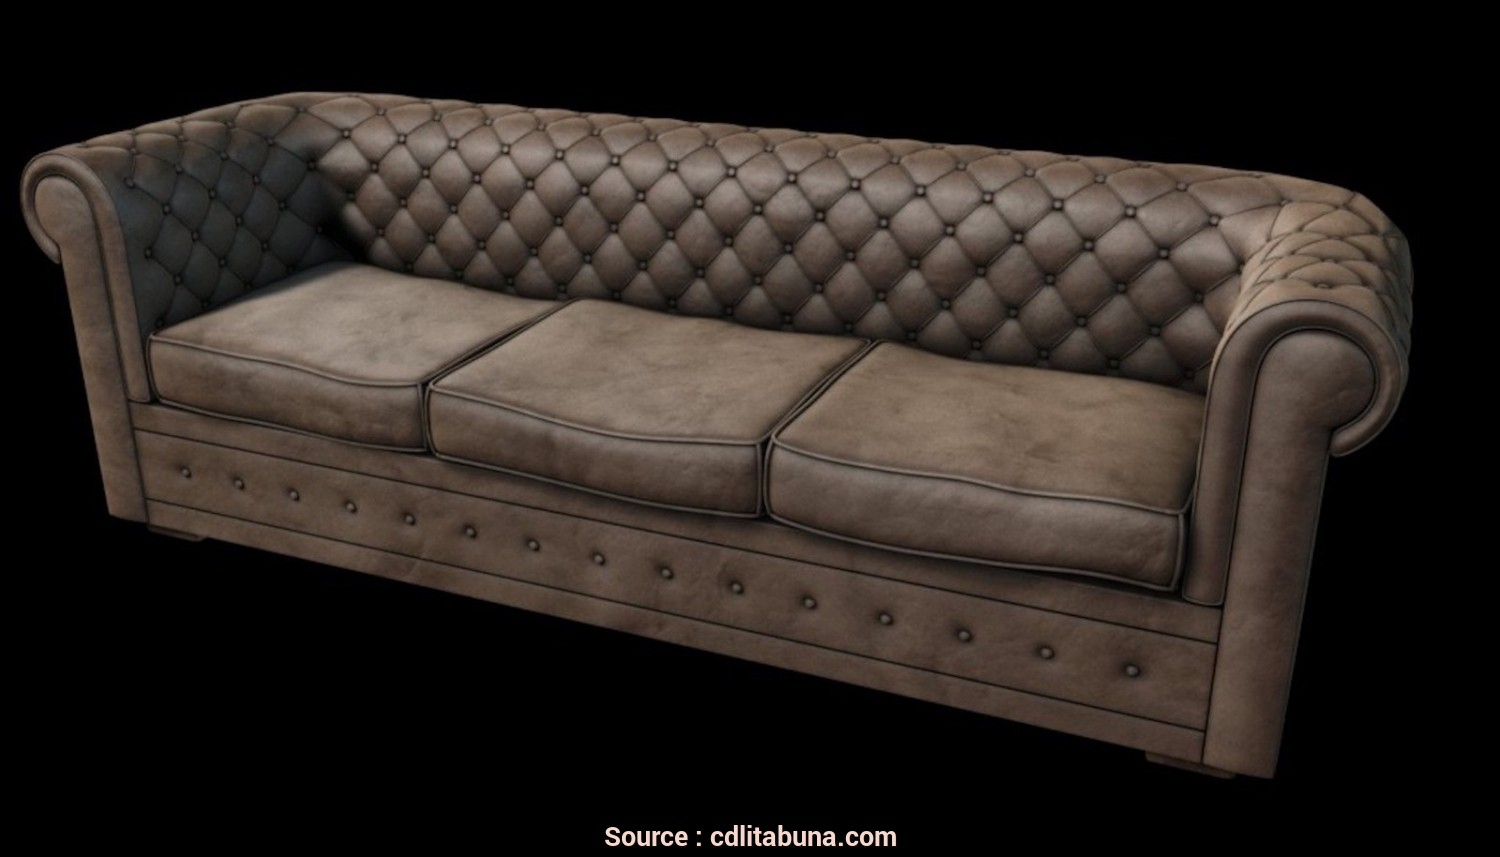 Divano Chesterfield Stoffa, Originale Divano Chesterfield Dwg